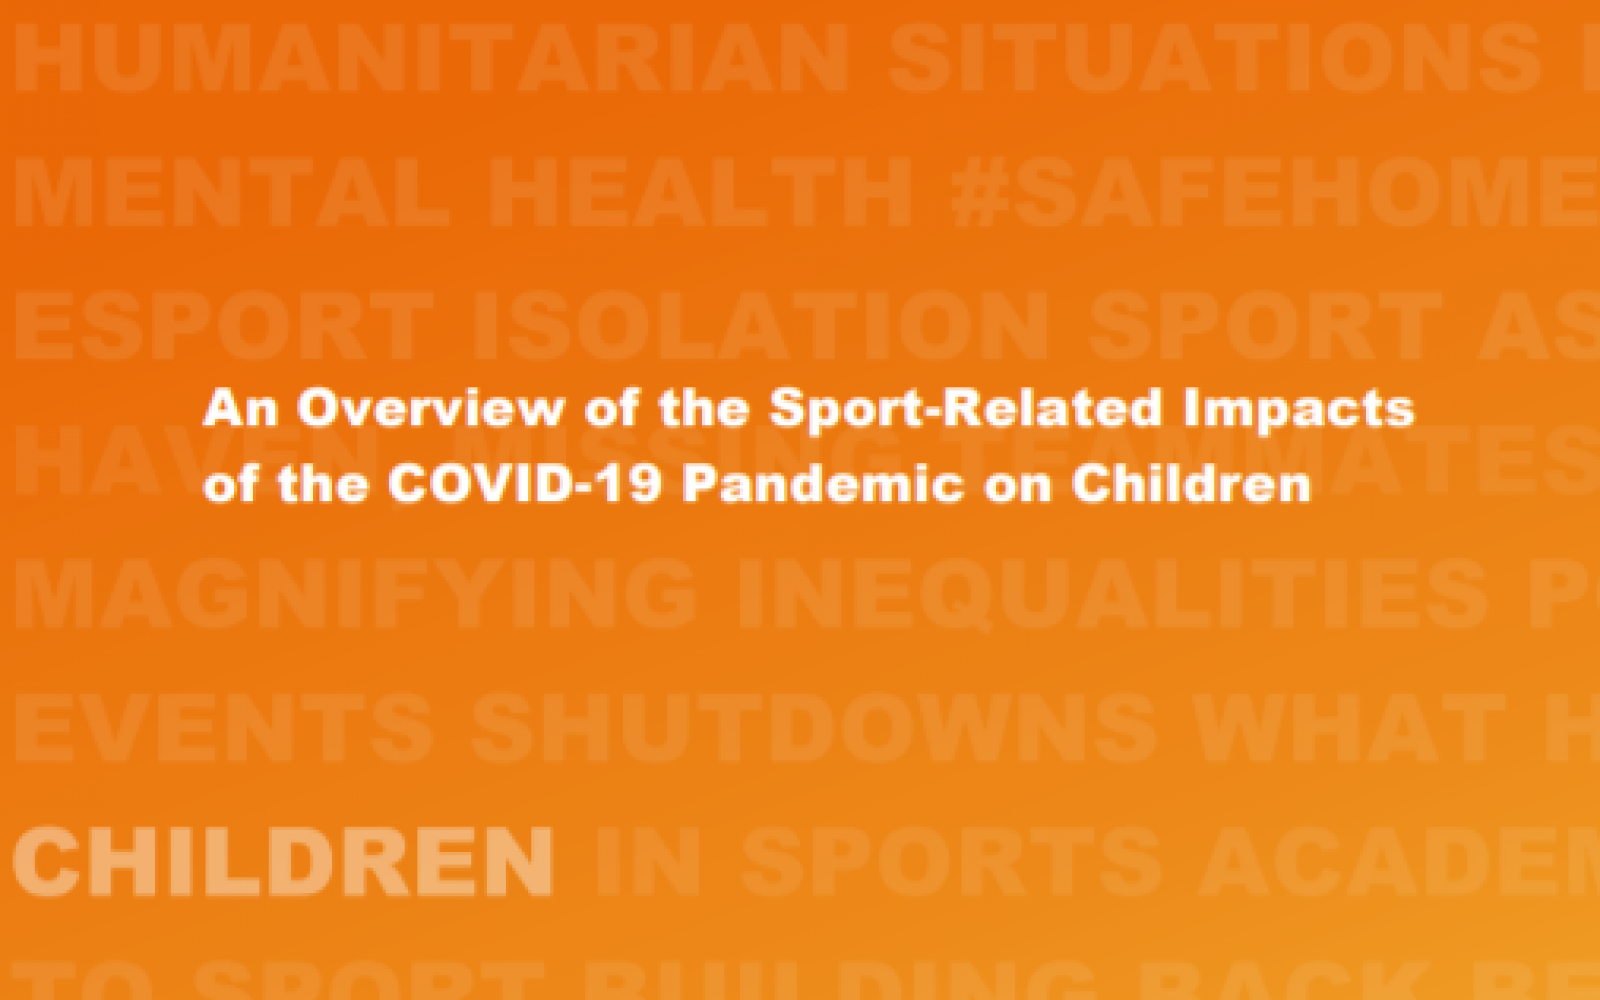 An Overview of the Sport-Related Impacts of the COVID-19 Pandemic ...